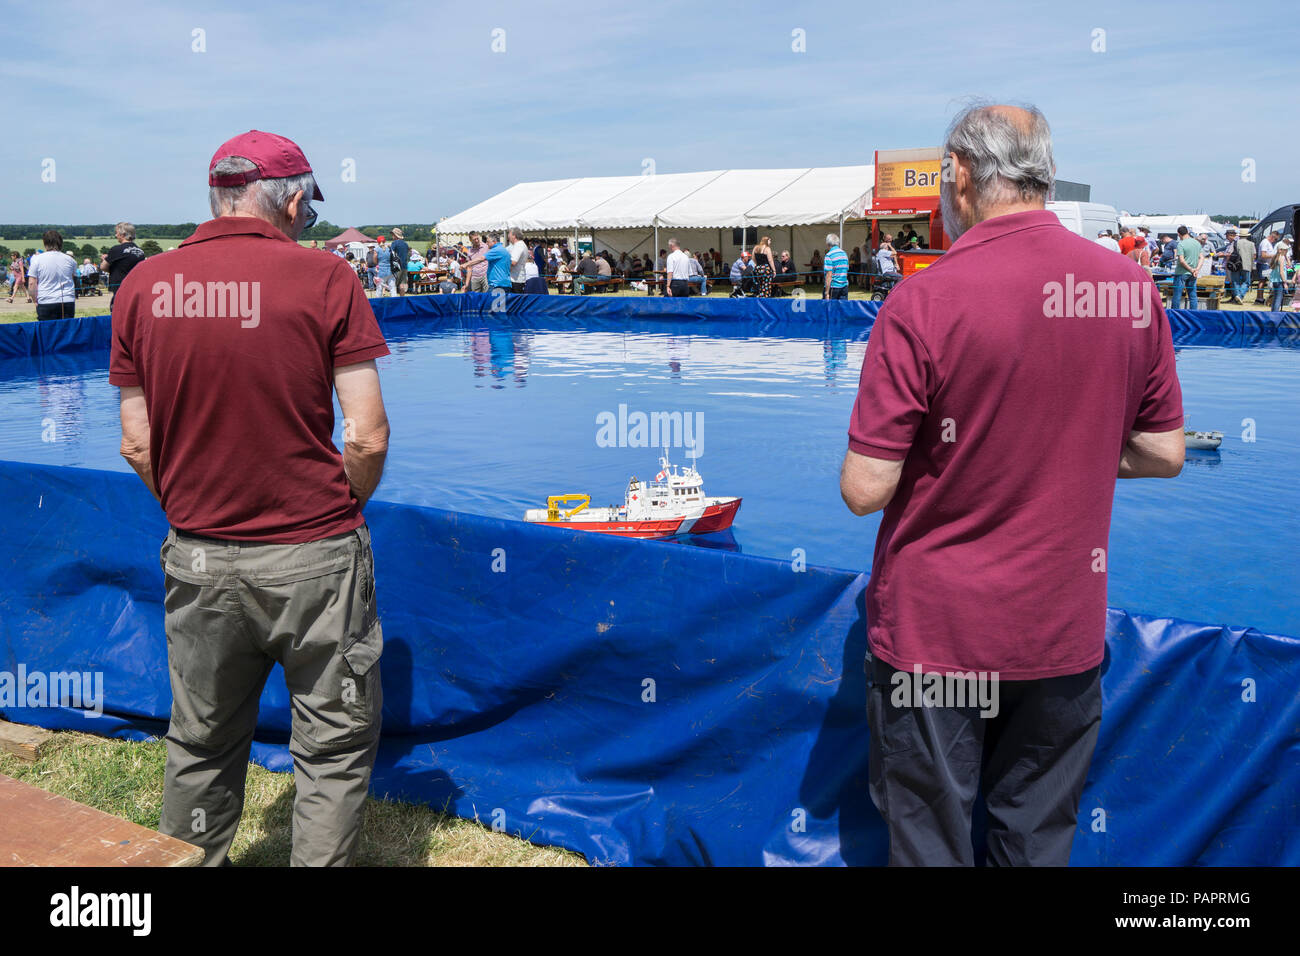 Two model boat enthusiasts controlling models on pool at wings and wheels - Stock Image